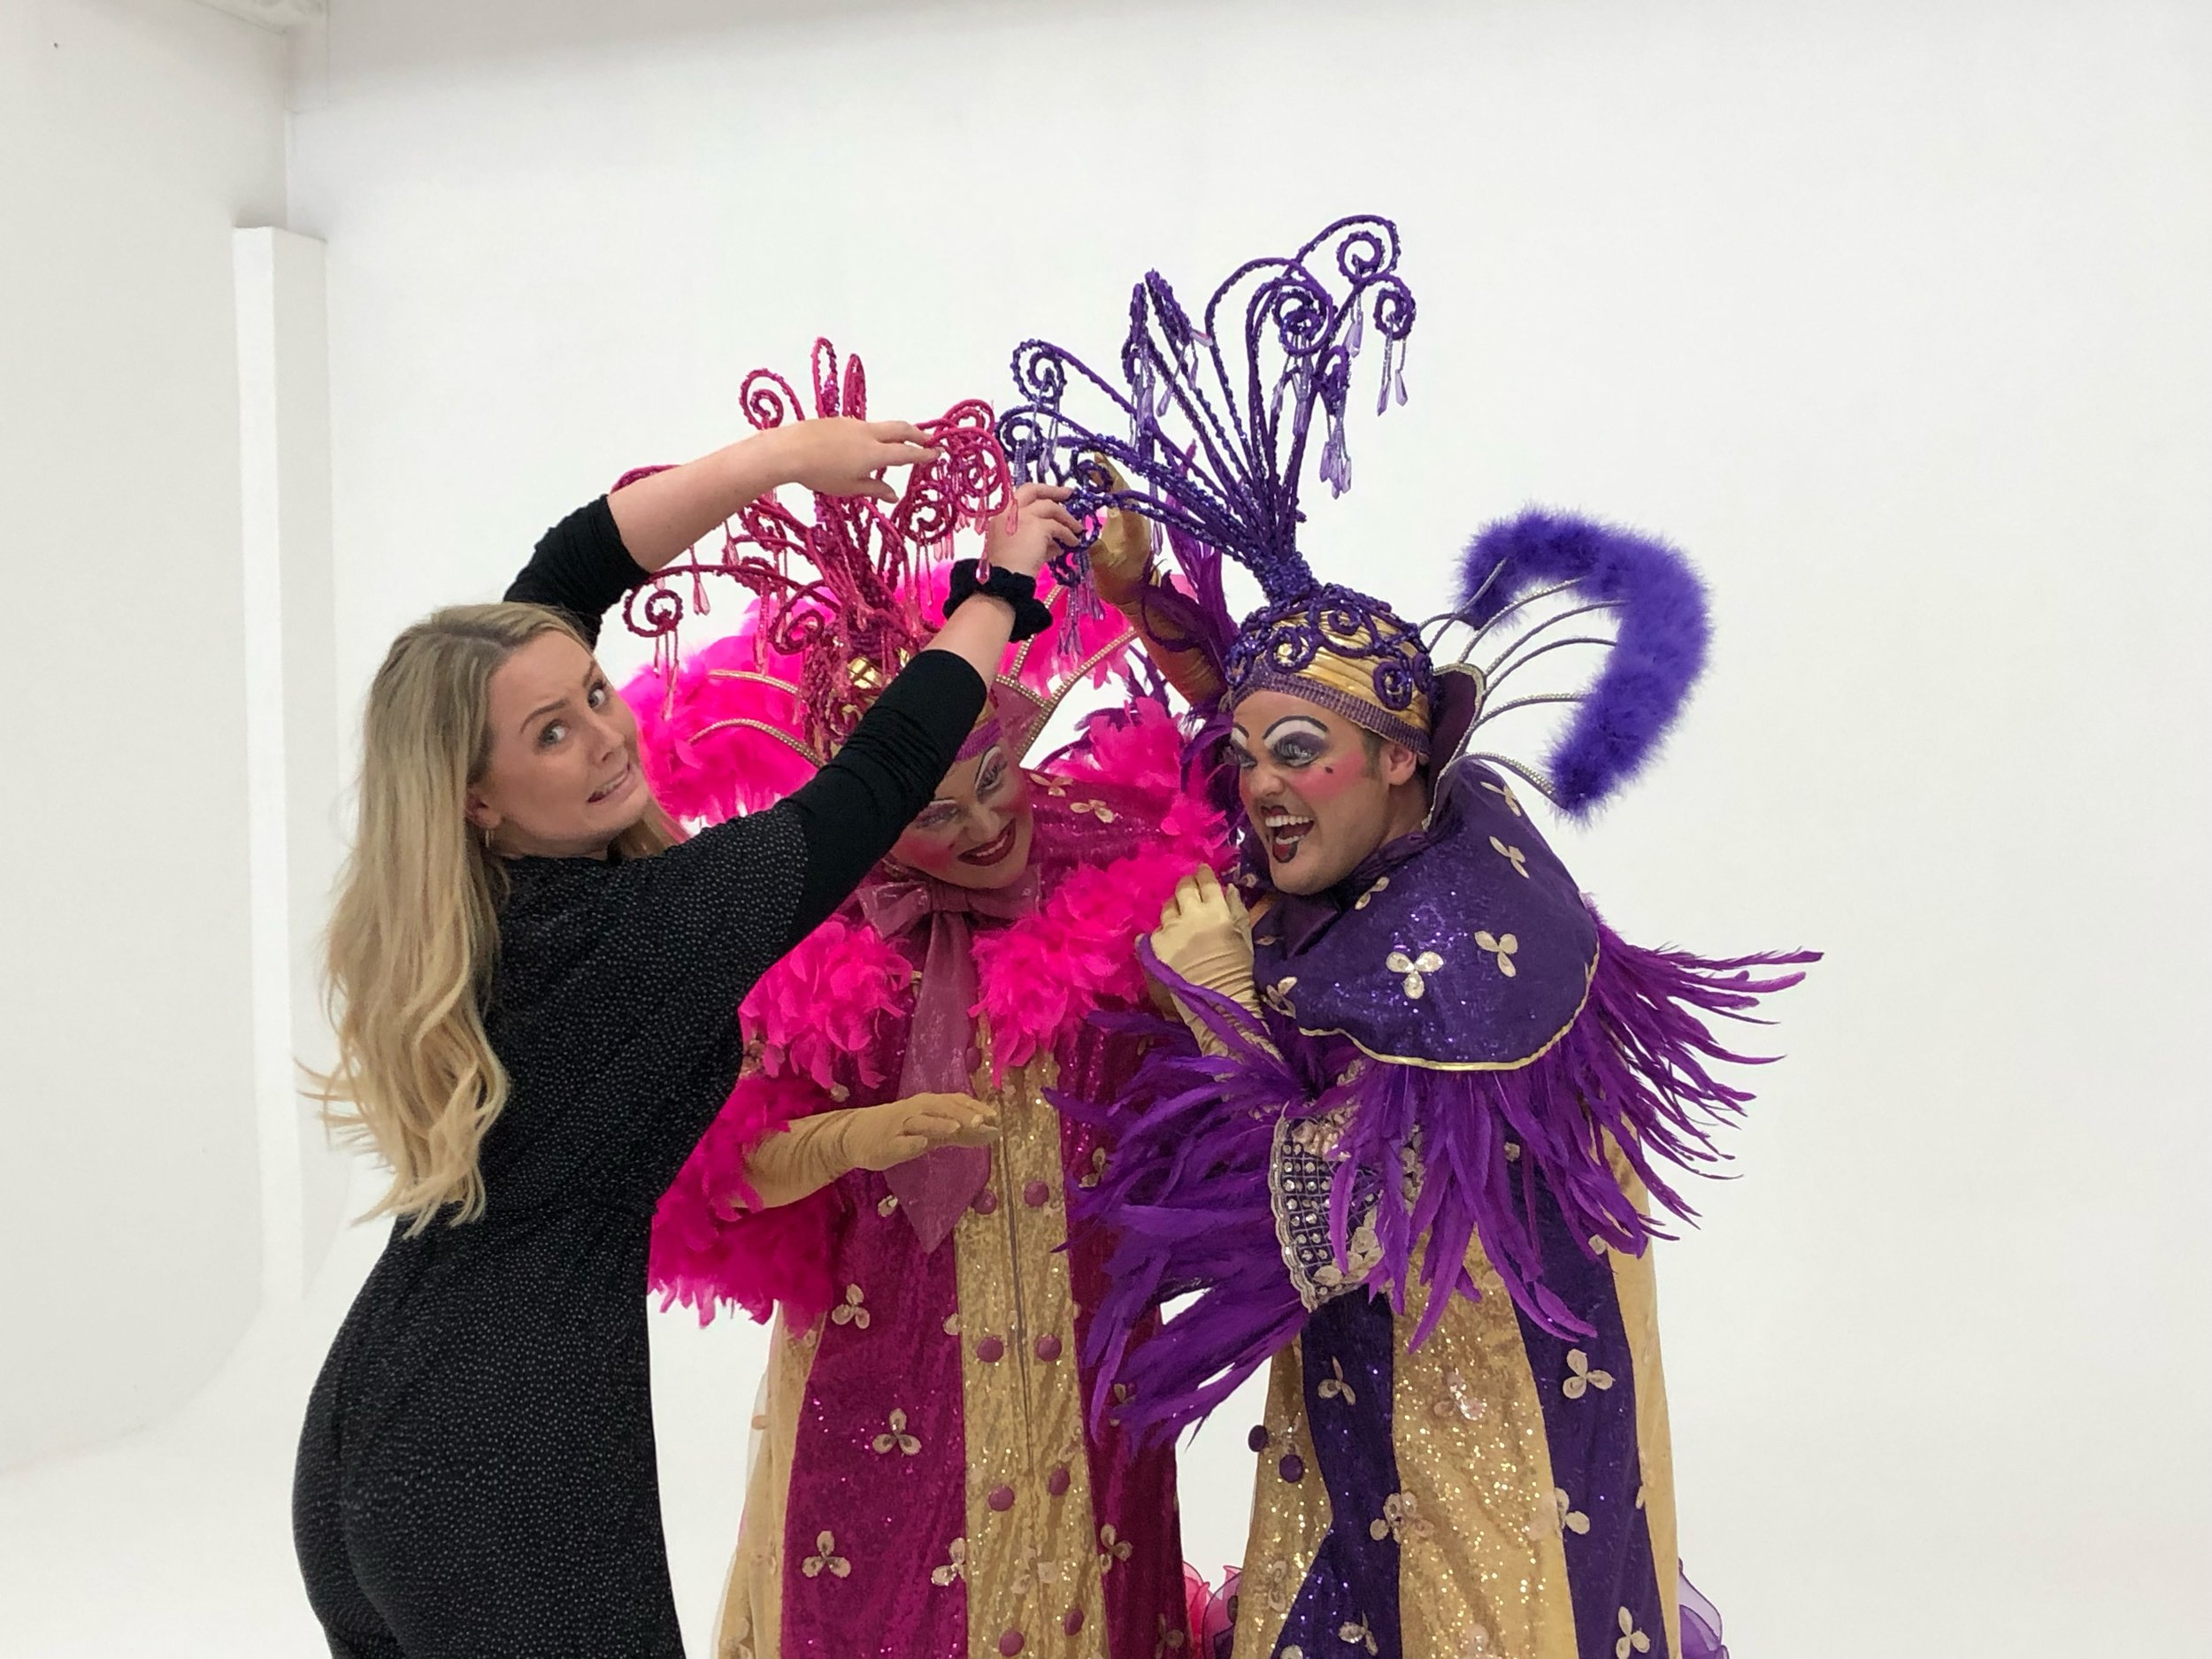 Jason Marc Williams and Alistair Barron play the Ugly sisters - and sometimes things didn't quite go to plan at the photo shoot!!